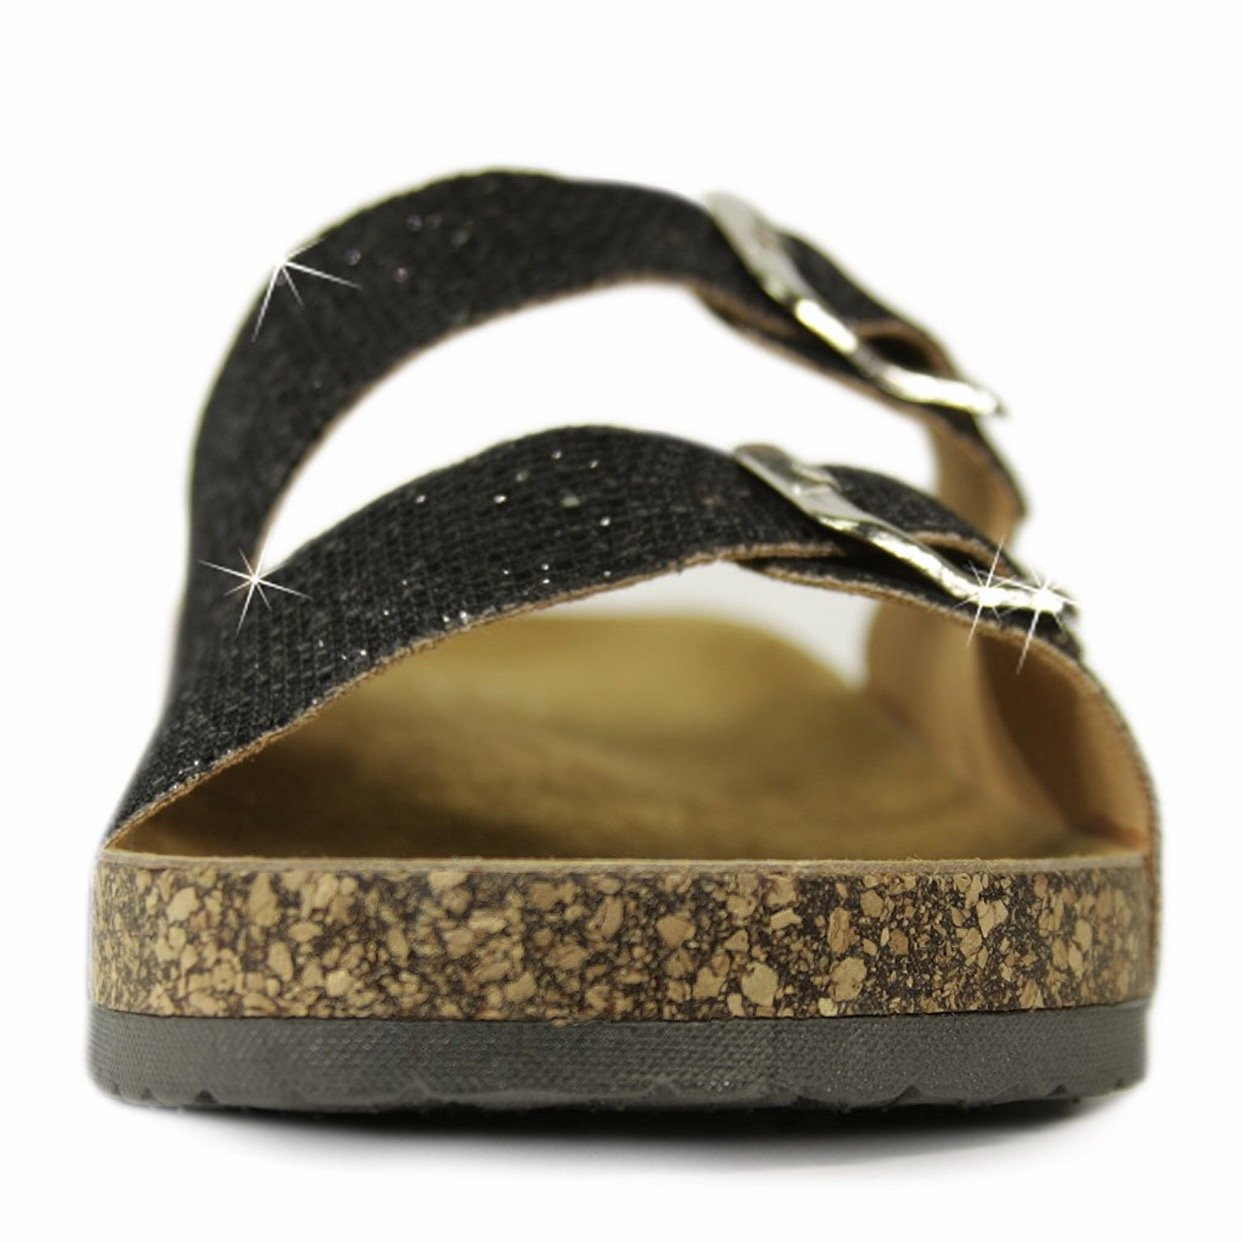 H2K Karen' Women's Casual Style Fashion Soft [Genuine Leather Foodbed] Slide Sandals Shoes Two Adjustable Straps (10, Glitter Black)